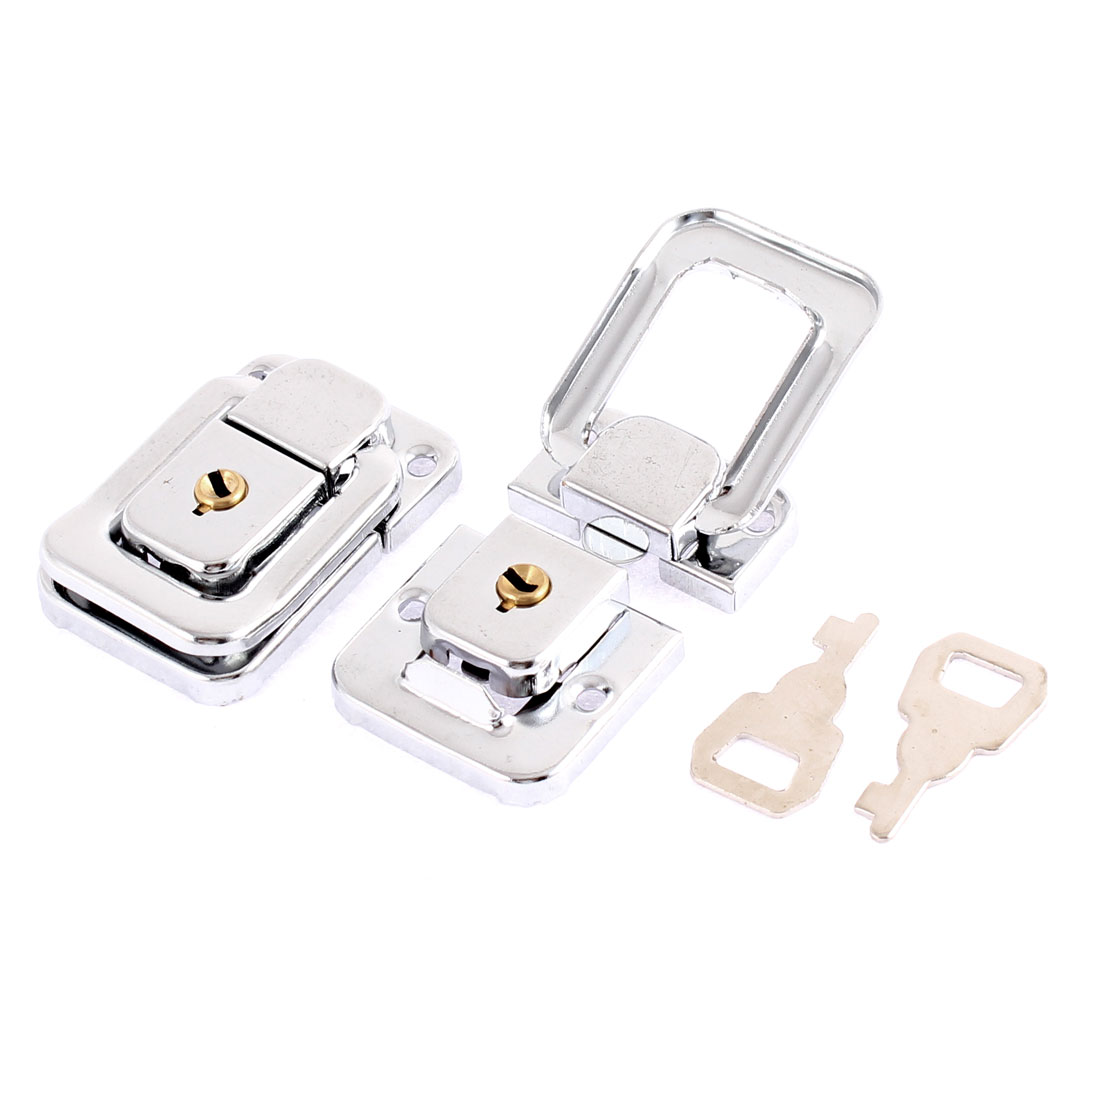 2 Pcs Spring Loaded Suitcases Case Box Hasp Latch Lock 47mm x 32mm